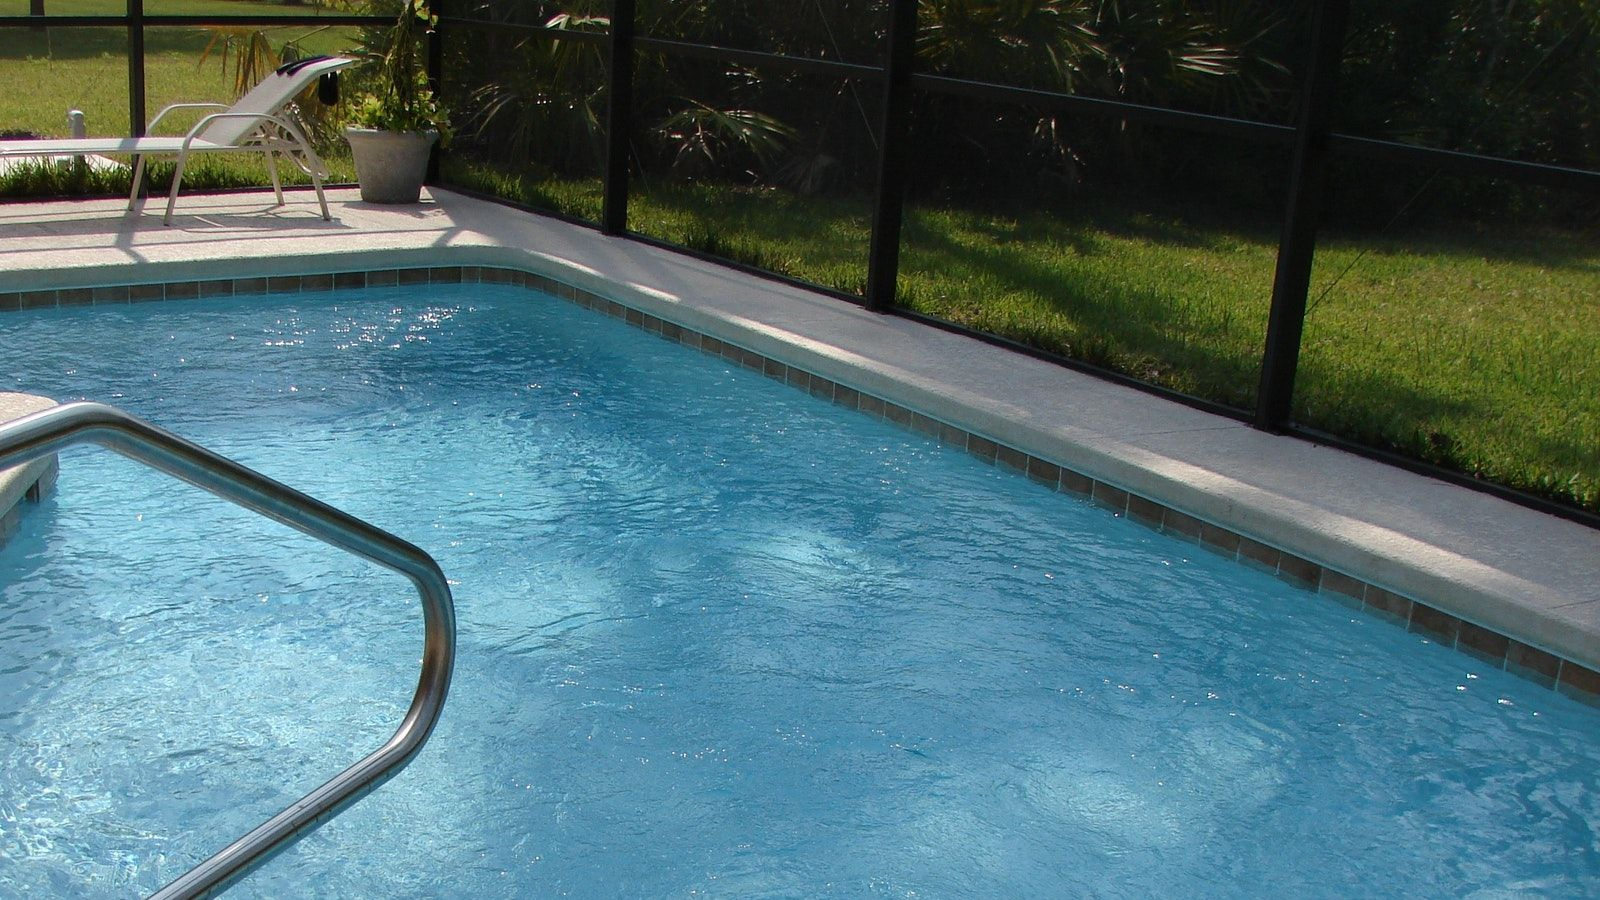 Swimming pool next to pool fence banner image